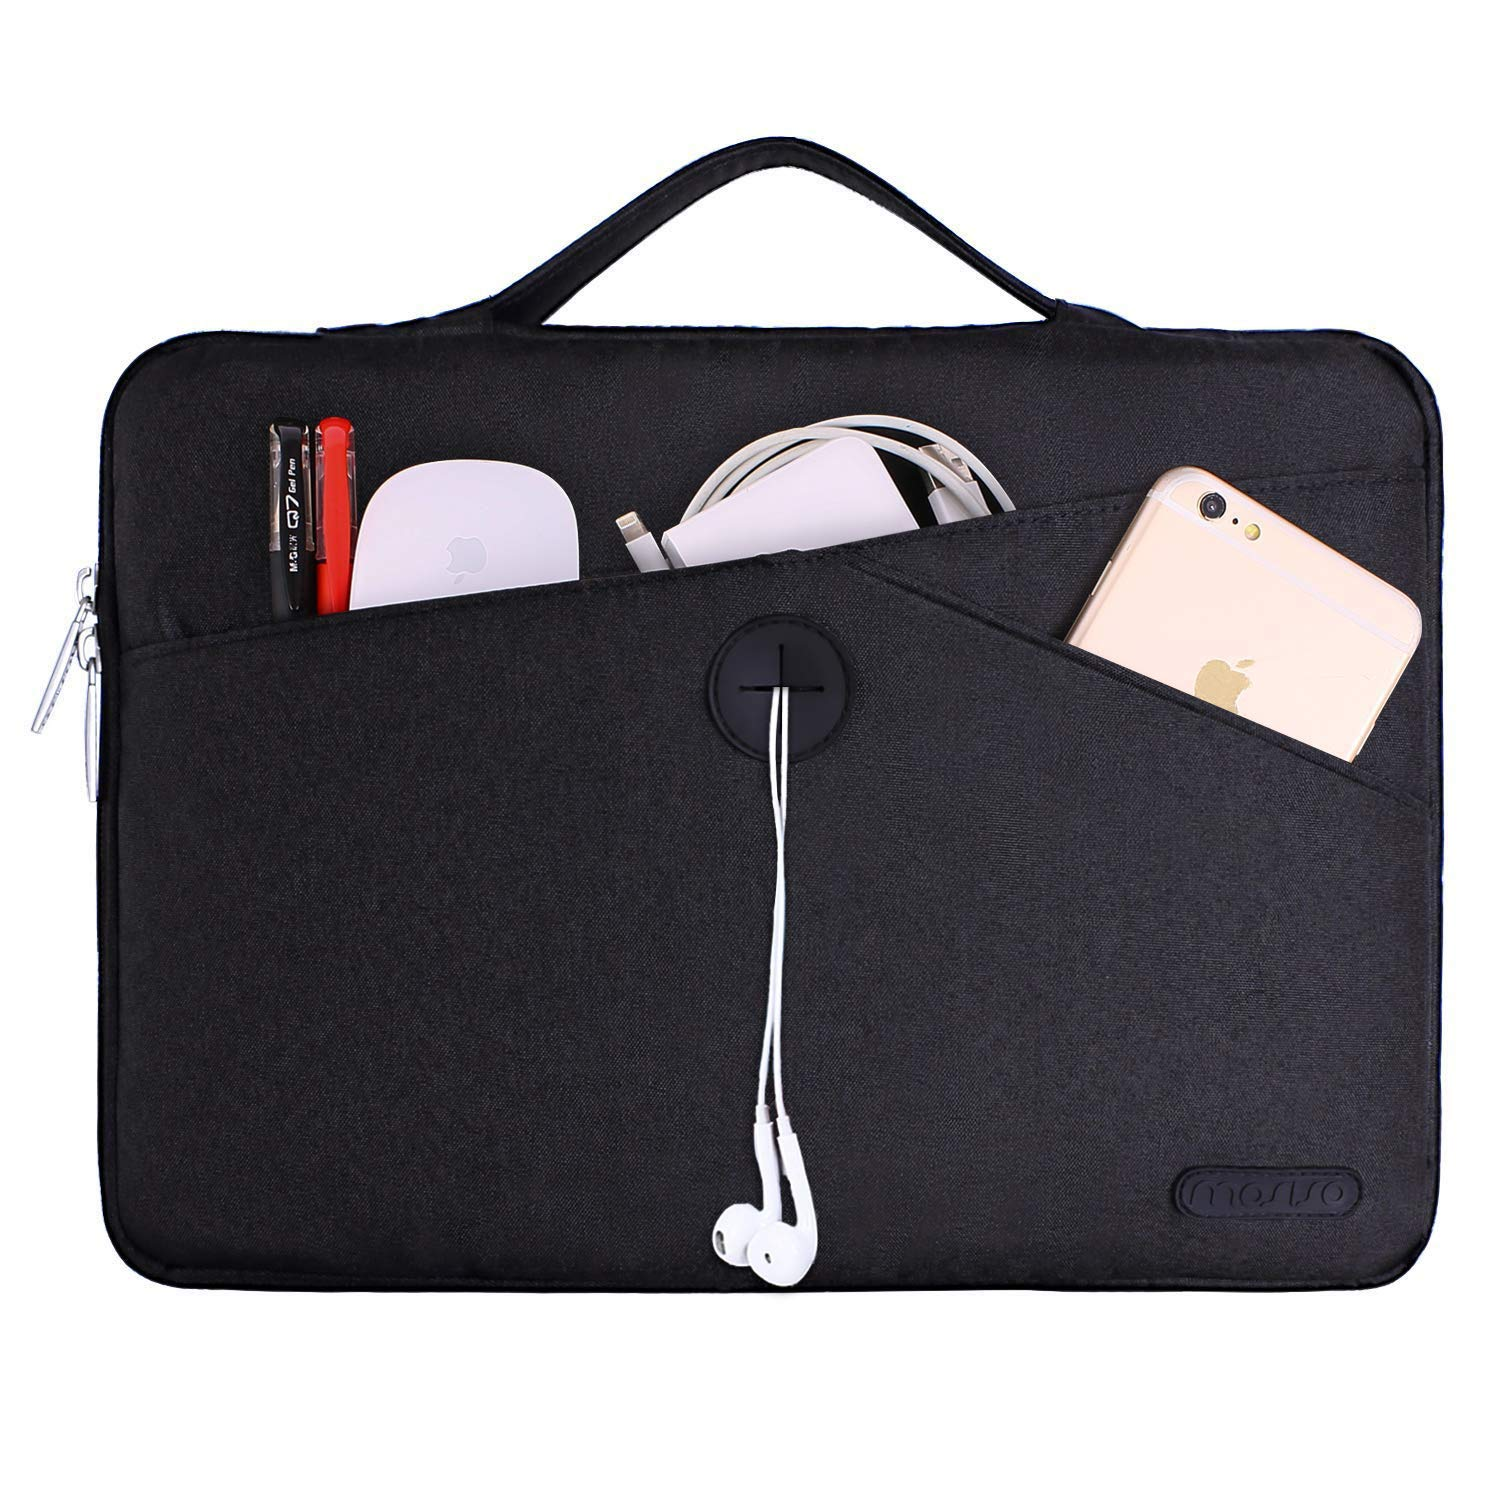 MOSISO Malet/ín Compatible con 13-13.3 Pulgadas MacBook Air//MacBook Pro Retina//2019 Surface Laptop 3//Surface Book Azul Marino 360 Funda Protectora Bolsa Blanda a Prueba de Golpe con Mango Retr/áctil